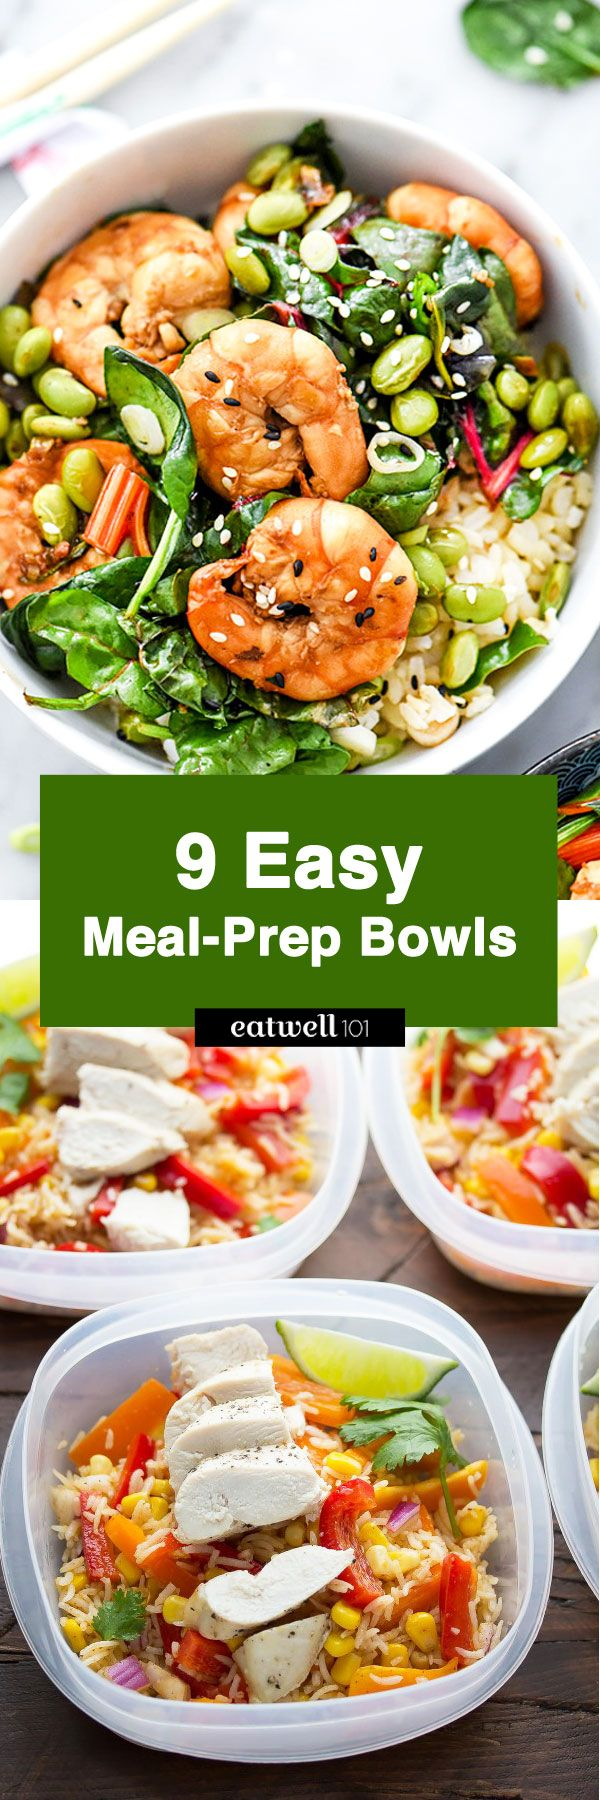 Eat healthy all week at home, at the office or on campus! We've rounded up 9easy meal-prep bowl recipes here to inspire you to branch out of your lunchtime rut. This is meal prep at its fine…